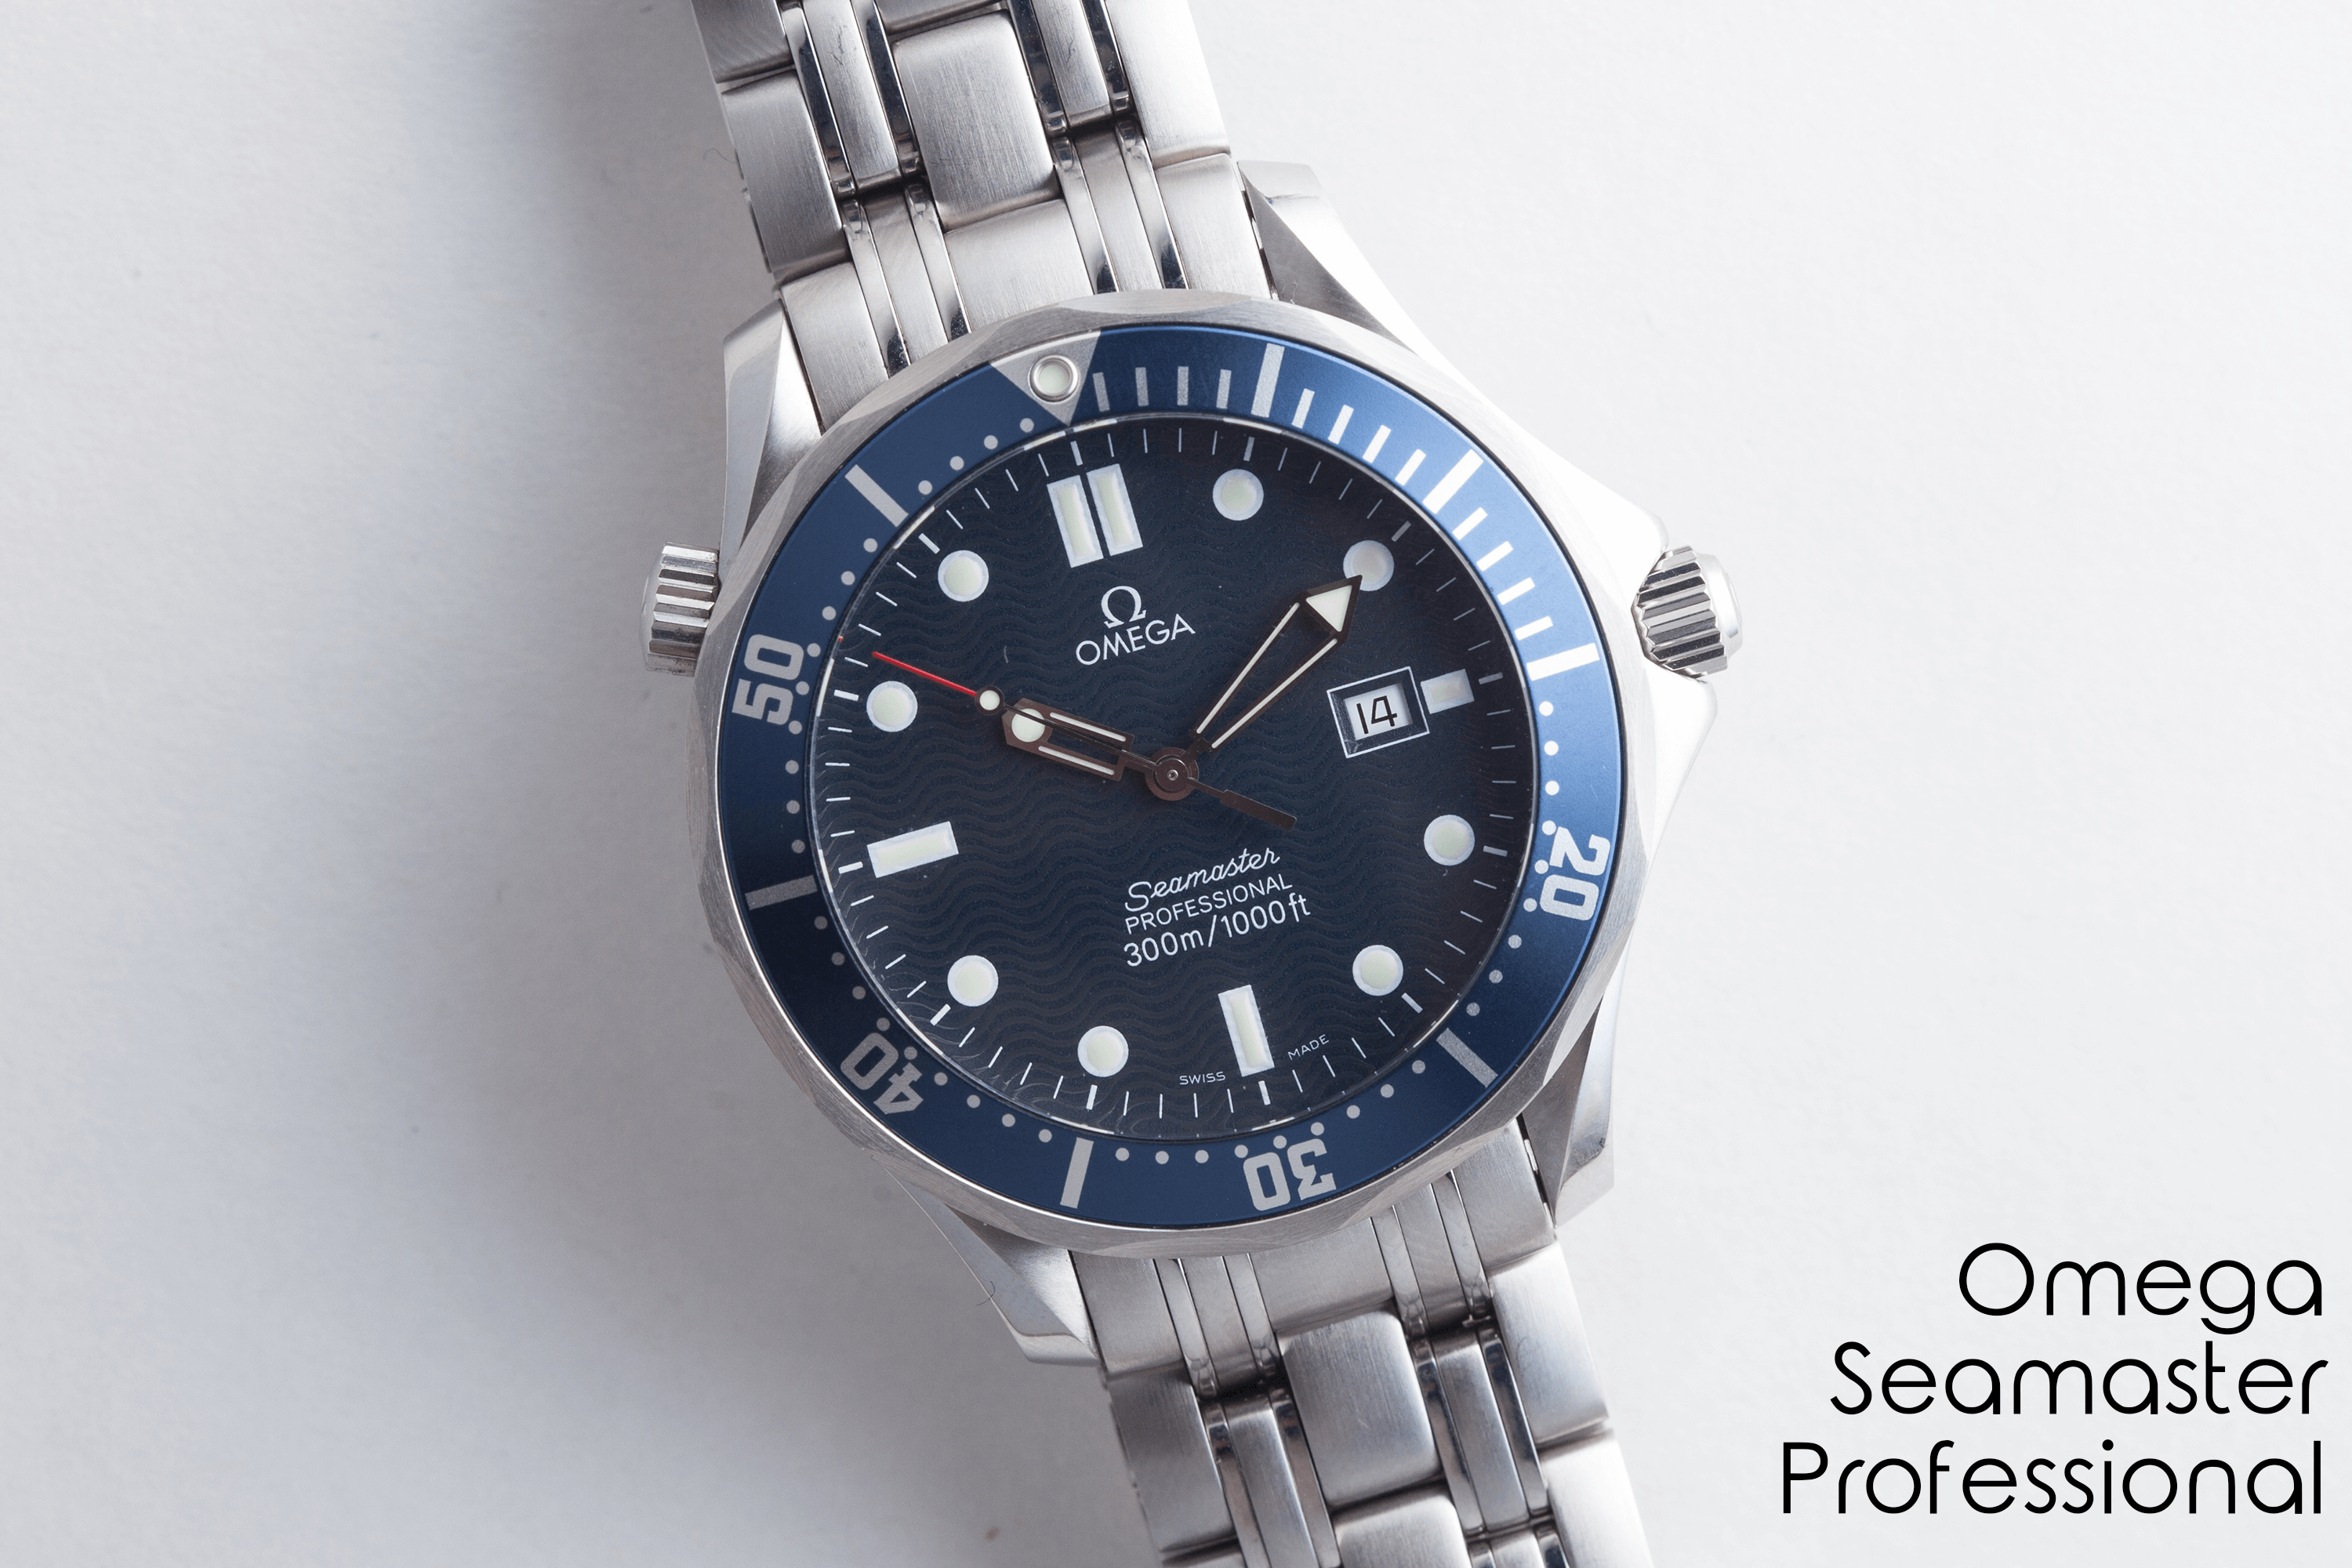 Omega seamaster professional vintage watches for Omega seamaster professional